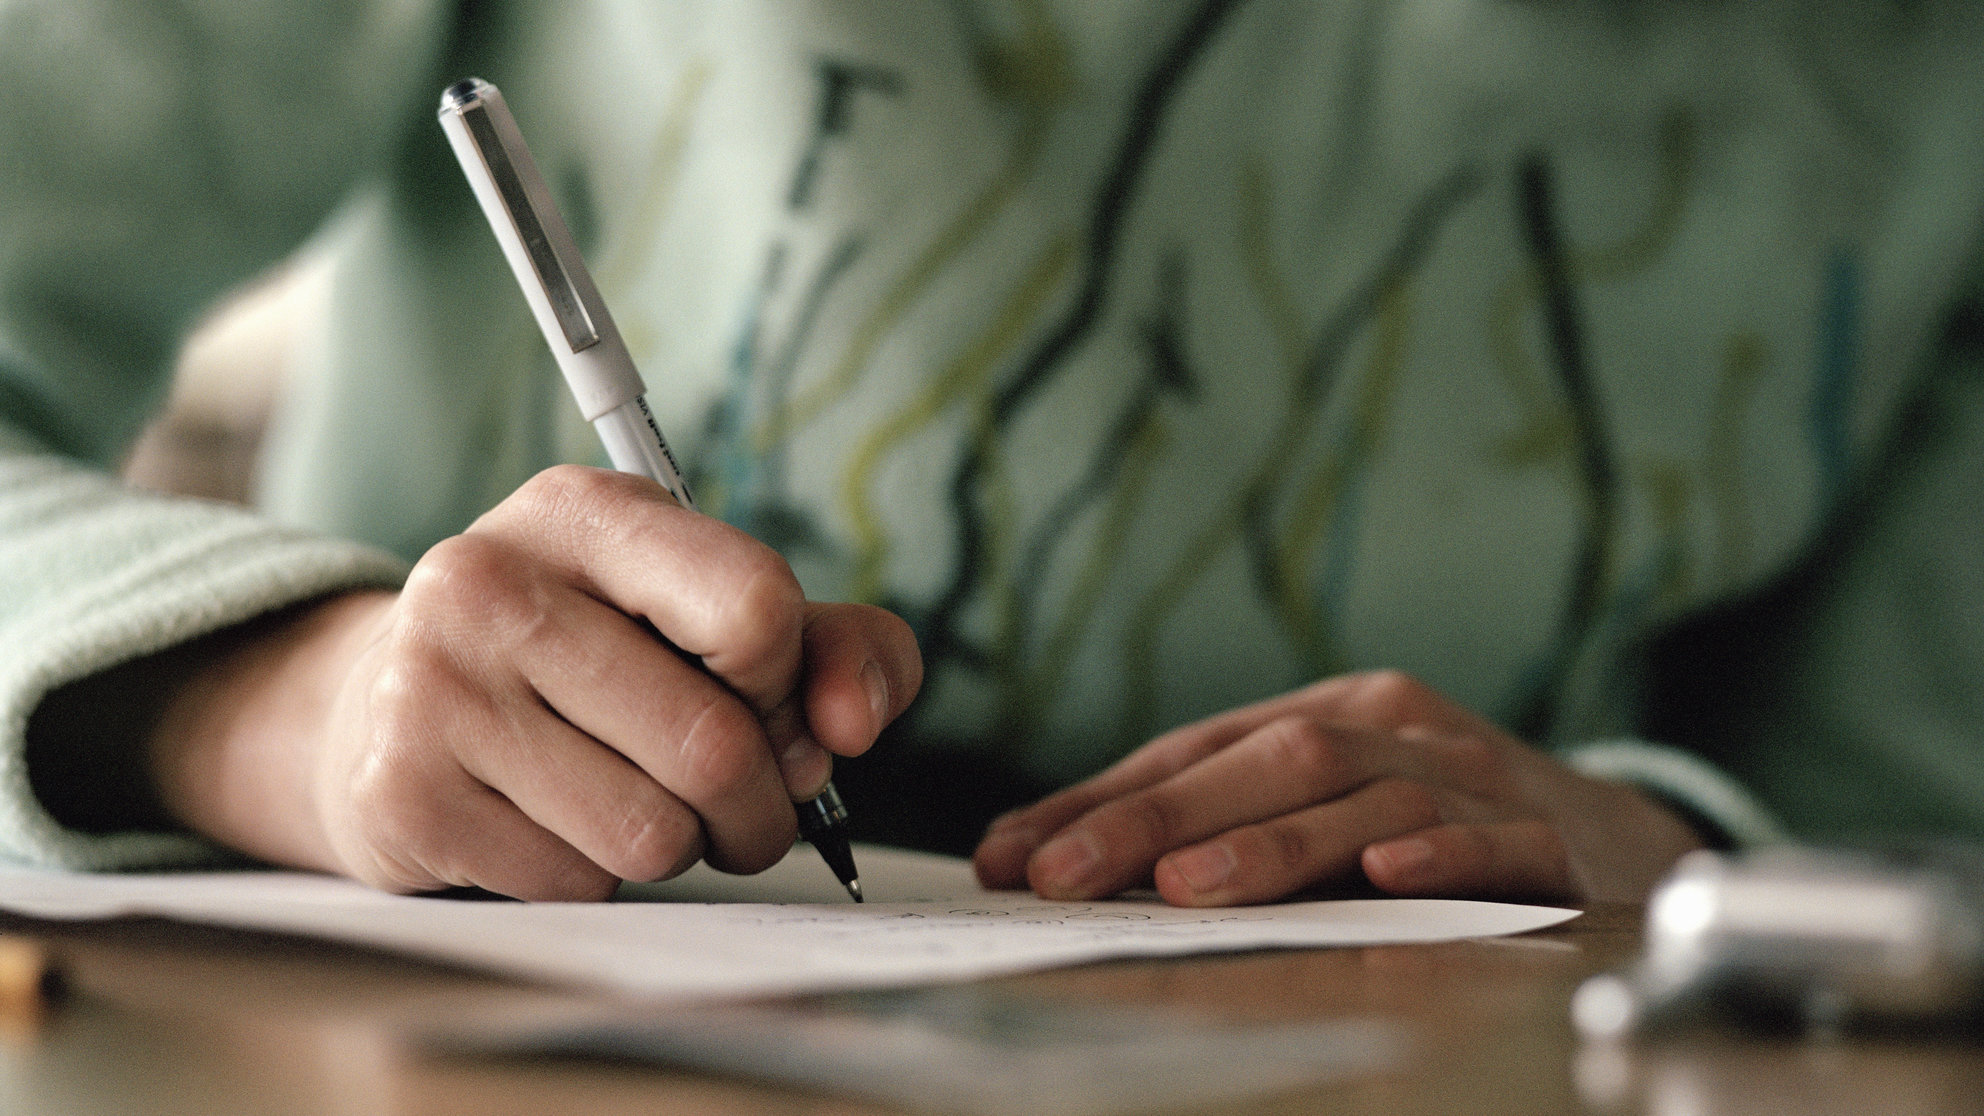 right-hand-writing